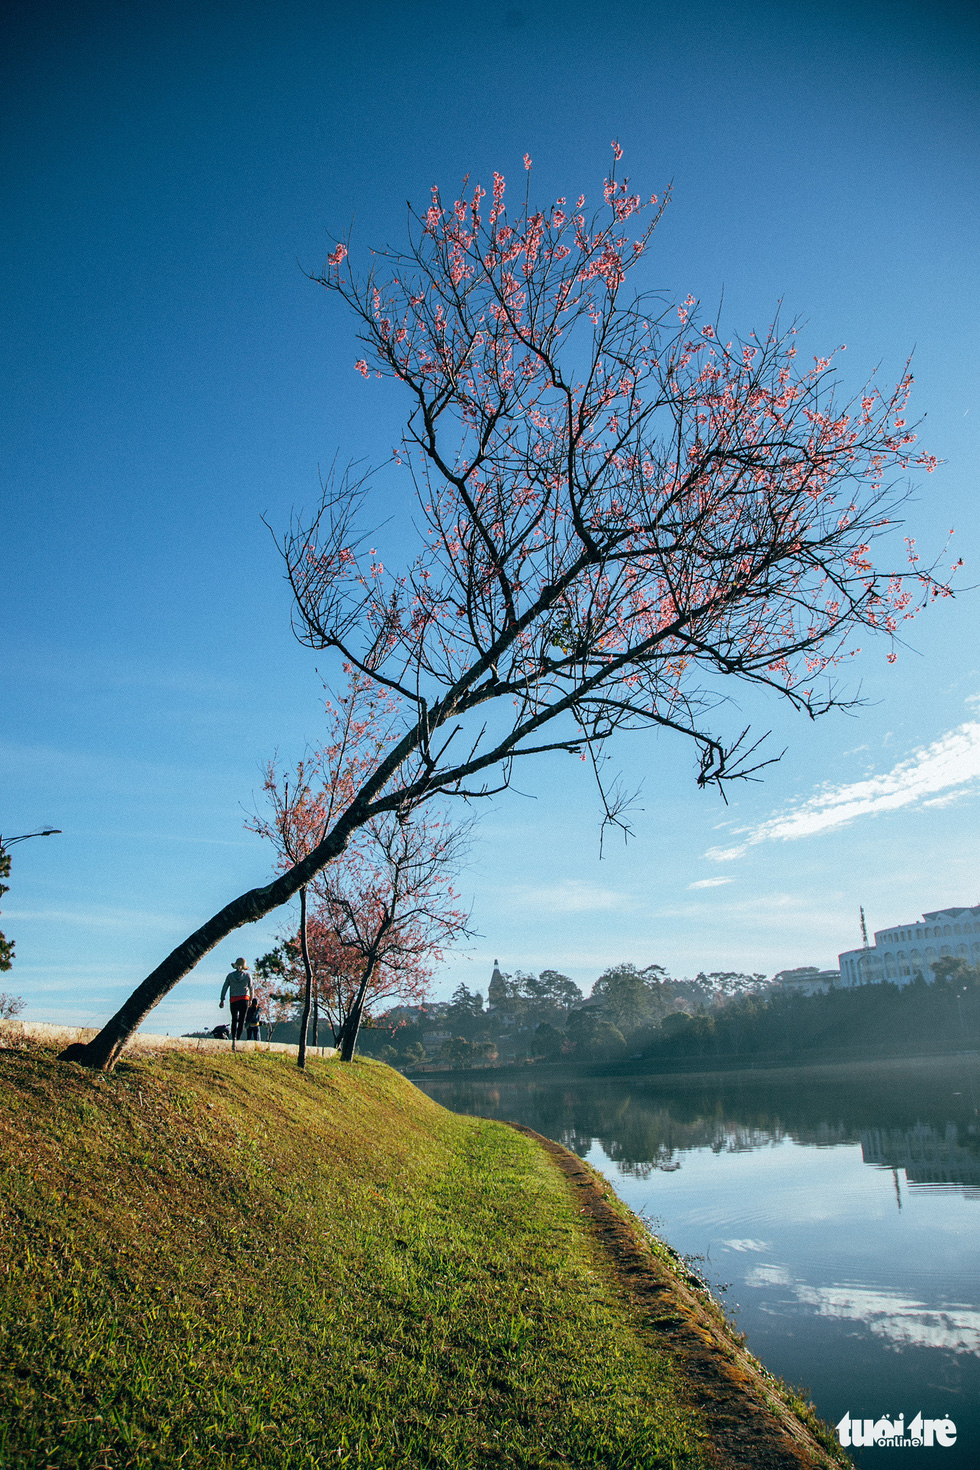 On New Year's Eve, cherry blossoms dyed the city of sad pink - Photo 7.